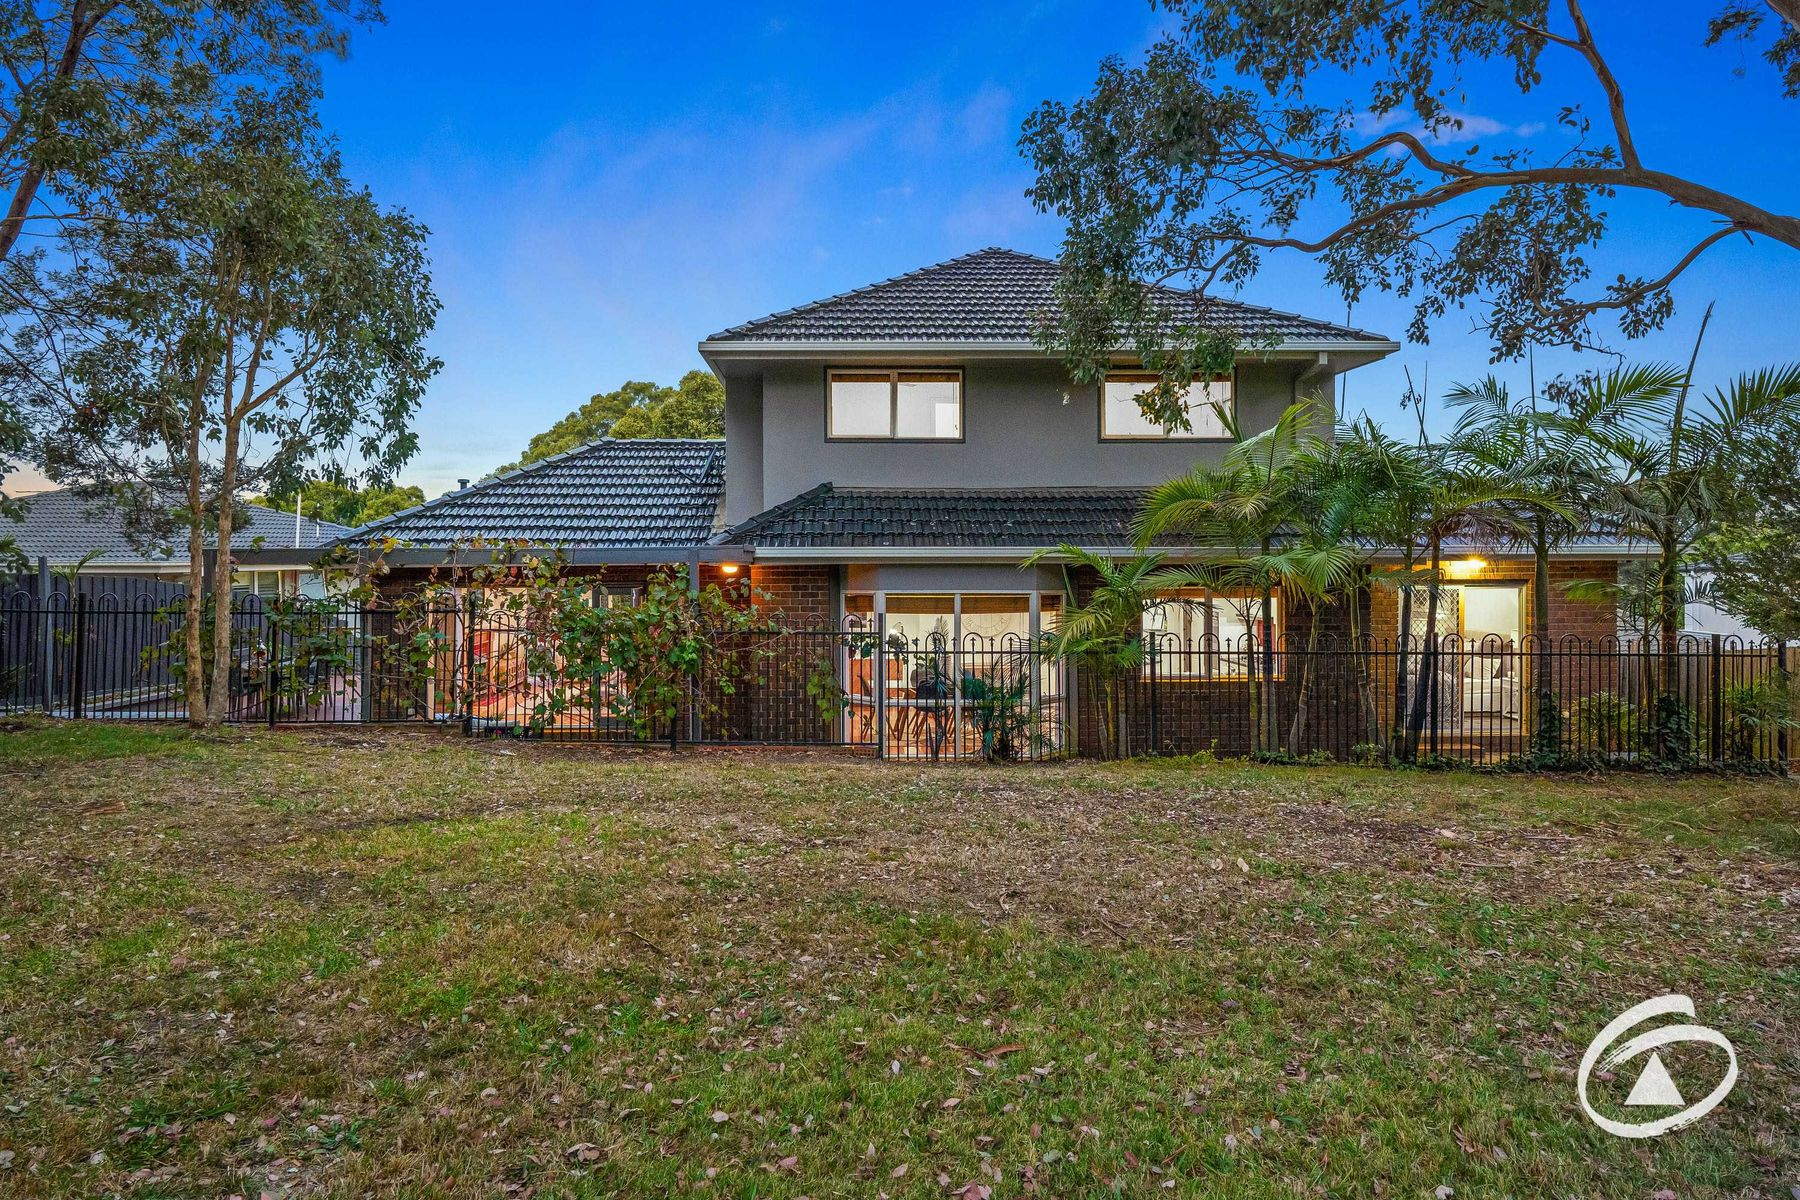 20B Outlook Drive, Berwick, VIC 3806